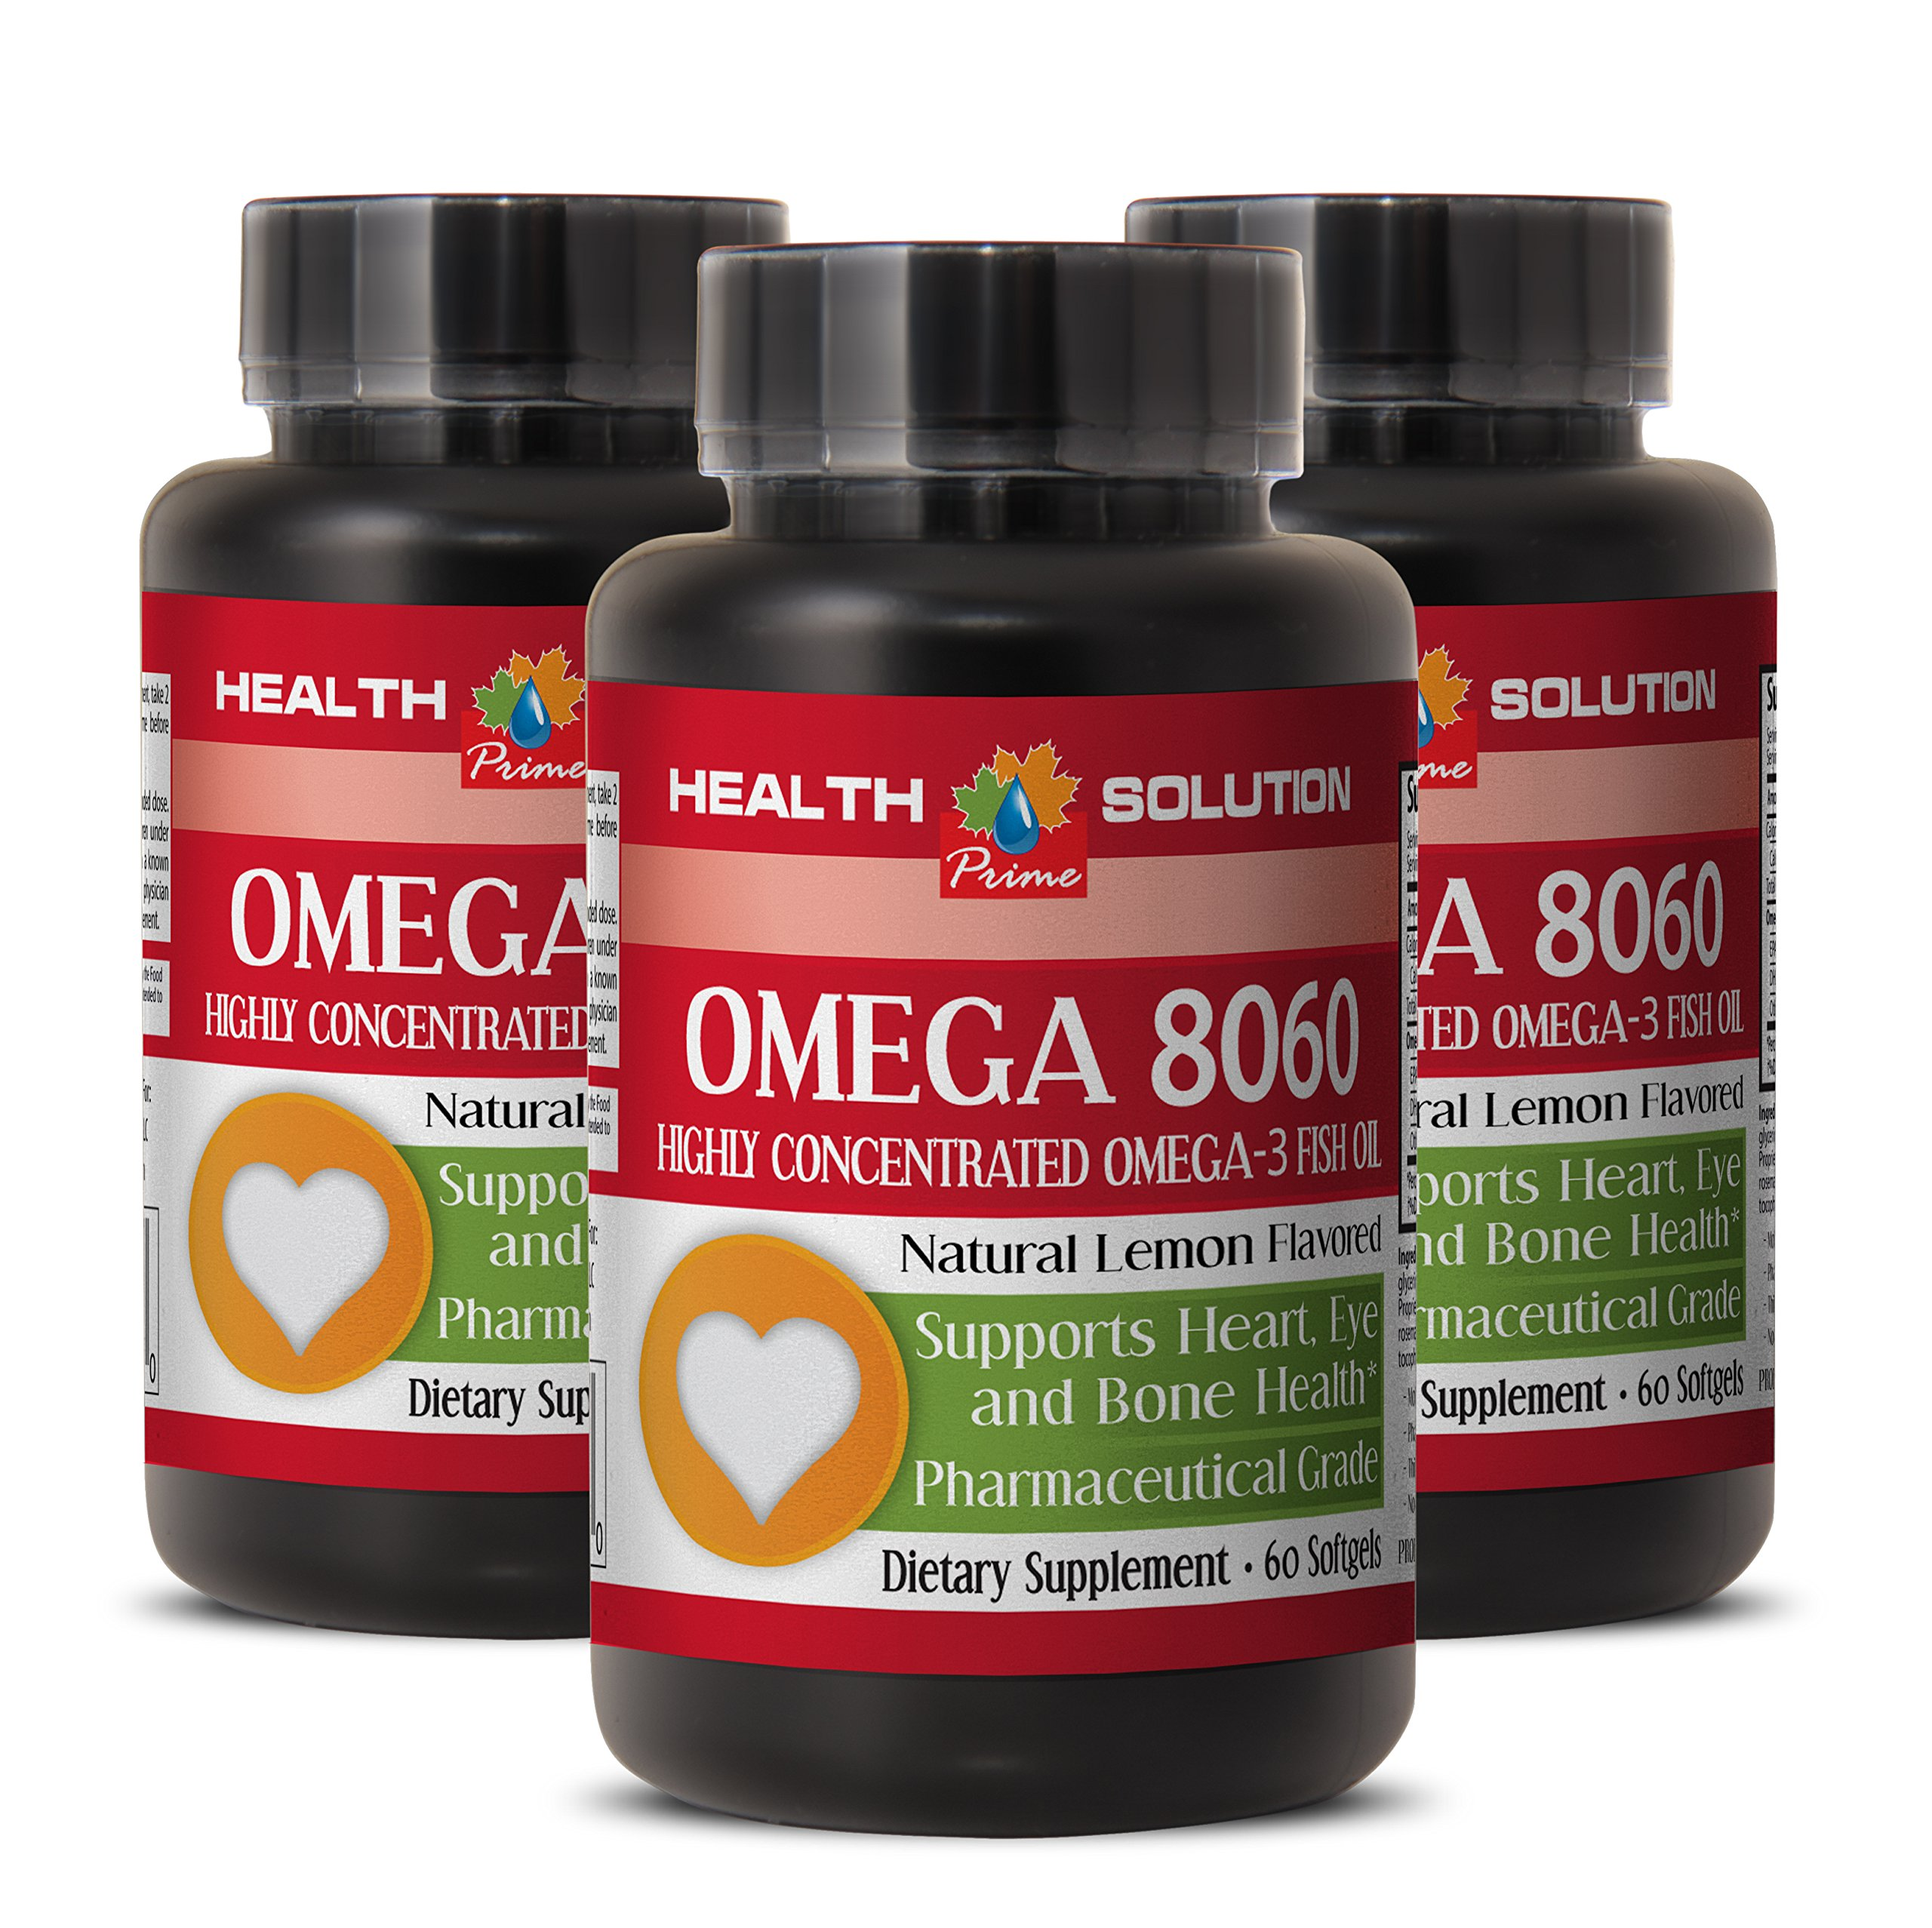 Omega 3 6 9 organic - OMEGA 8060 OMEGA-3 FATTY ACIDS - weight loss and fertility support (3 Bottles)